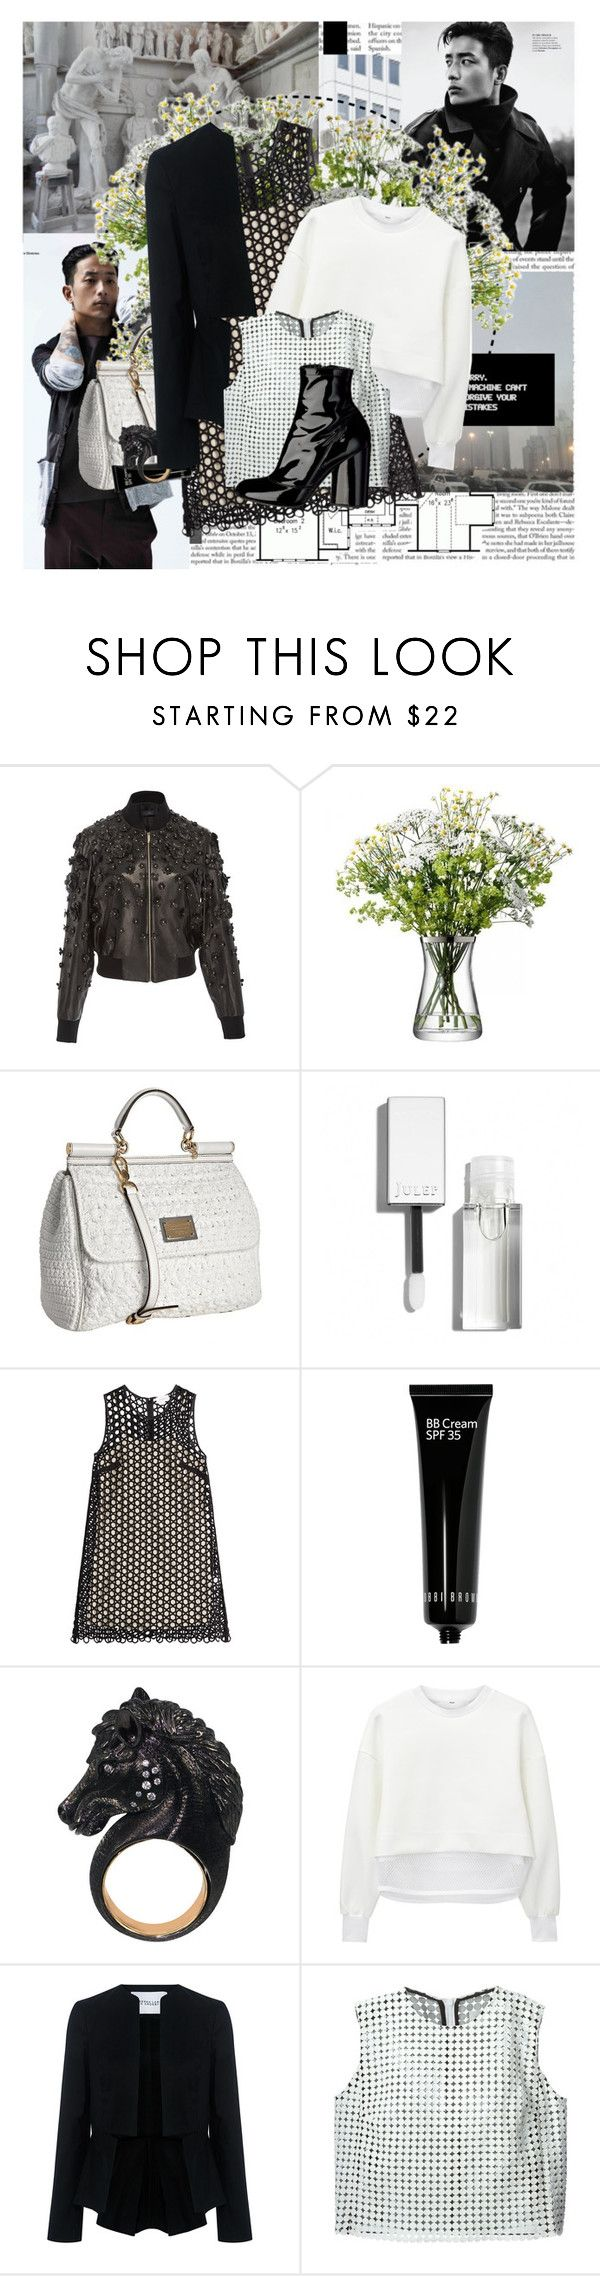 """Models: Sung Jin Park"" by katieci ❤ liked on Polyvore featuring Edition, Karl Lagerfeld, Elie Saab, Givenchy, Dolce&Gabbana, Isa Arfen, Bobbi Brown Cosmetics, Nisan, Toga and 10 Crosby Derek Lam"